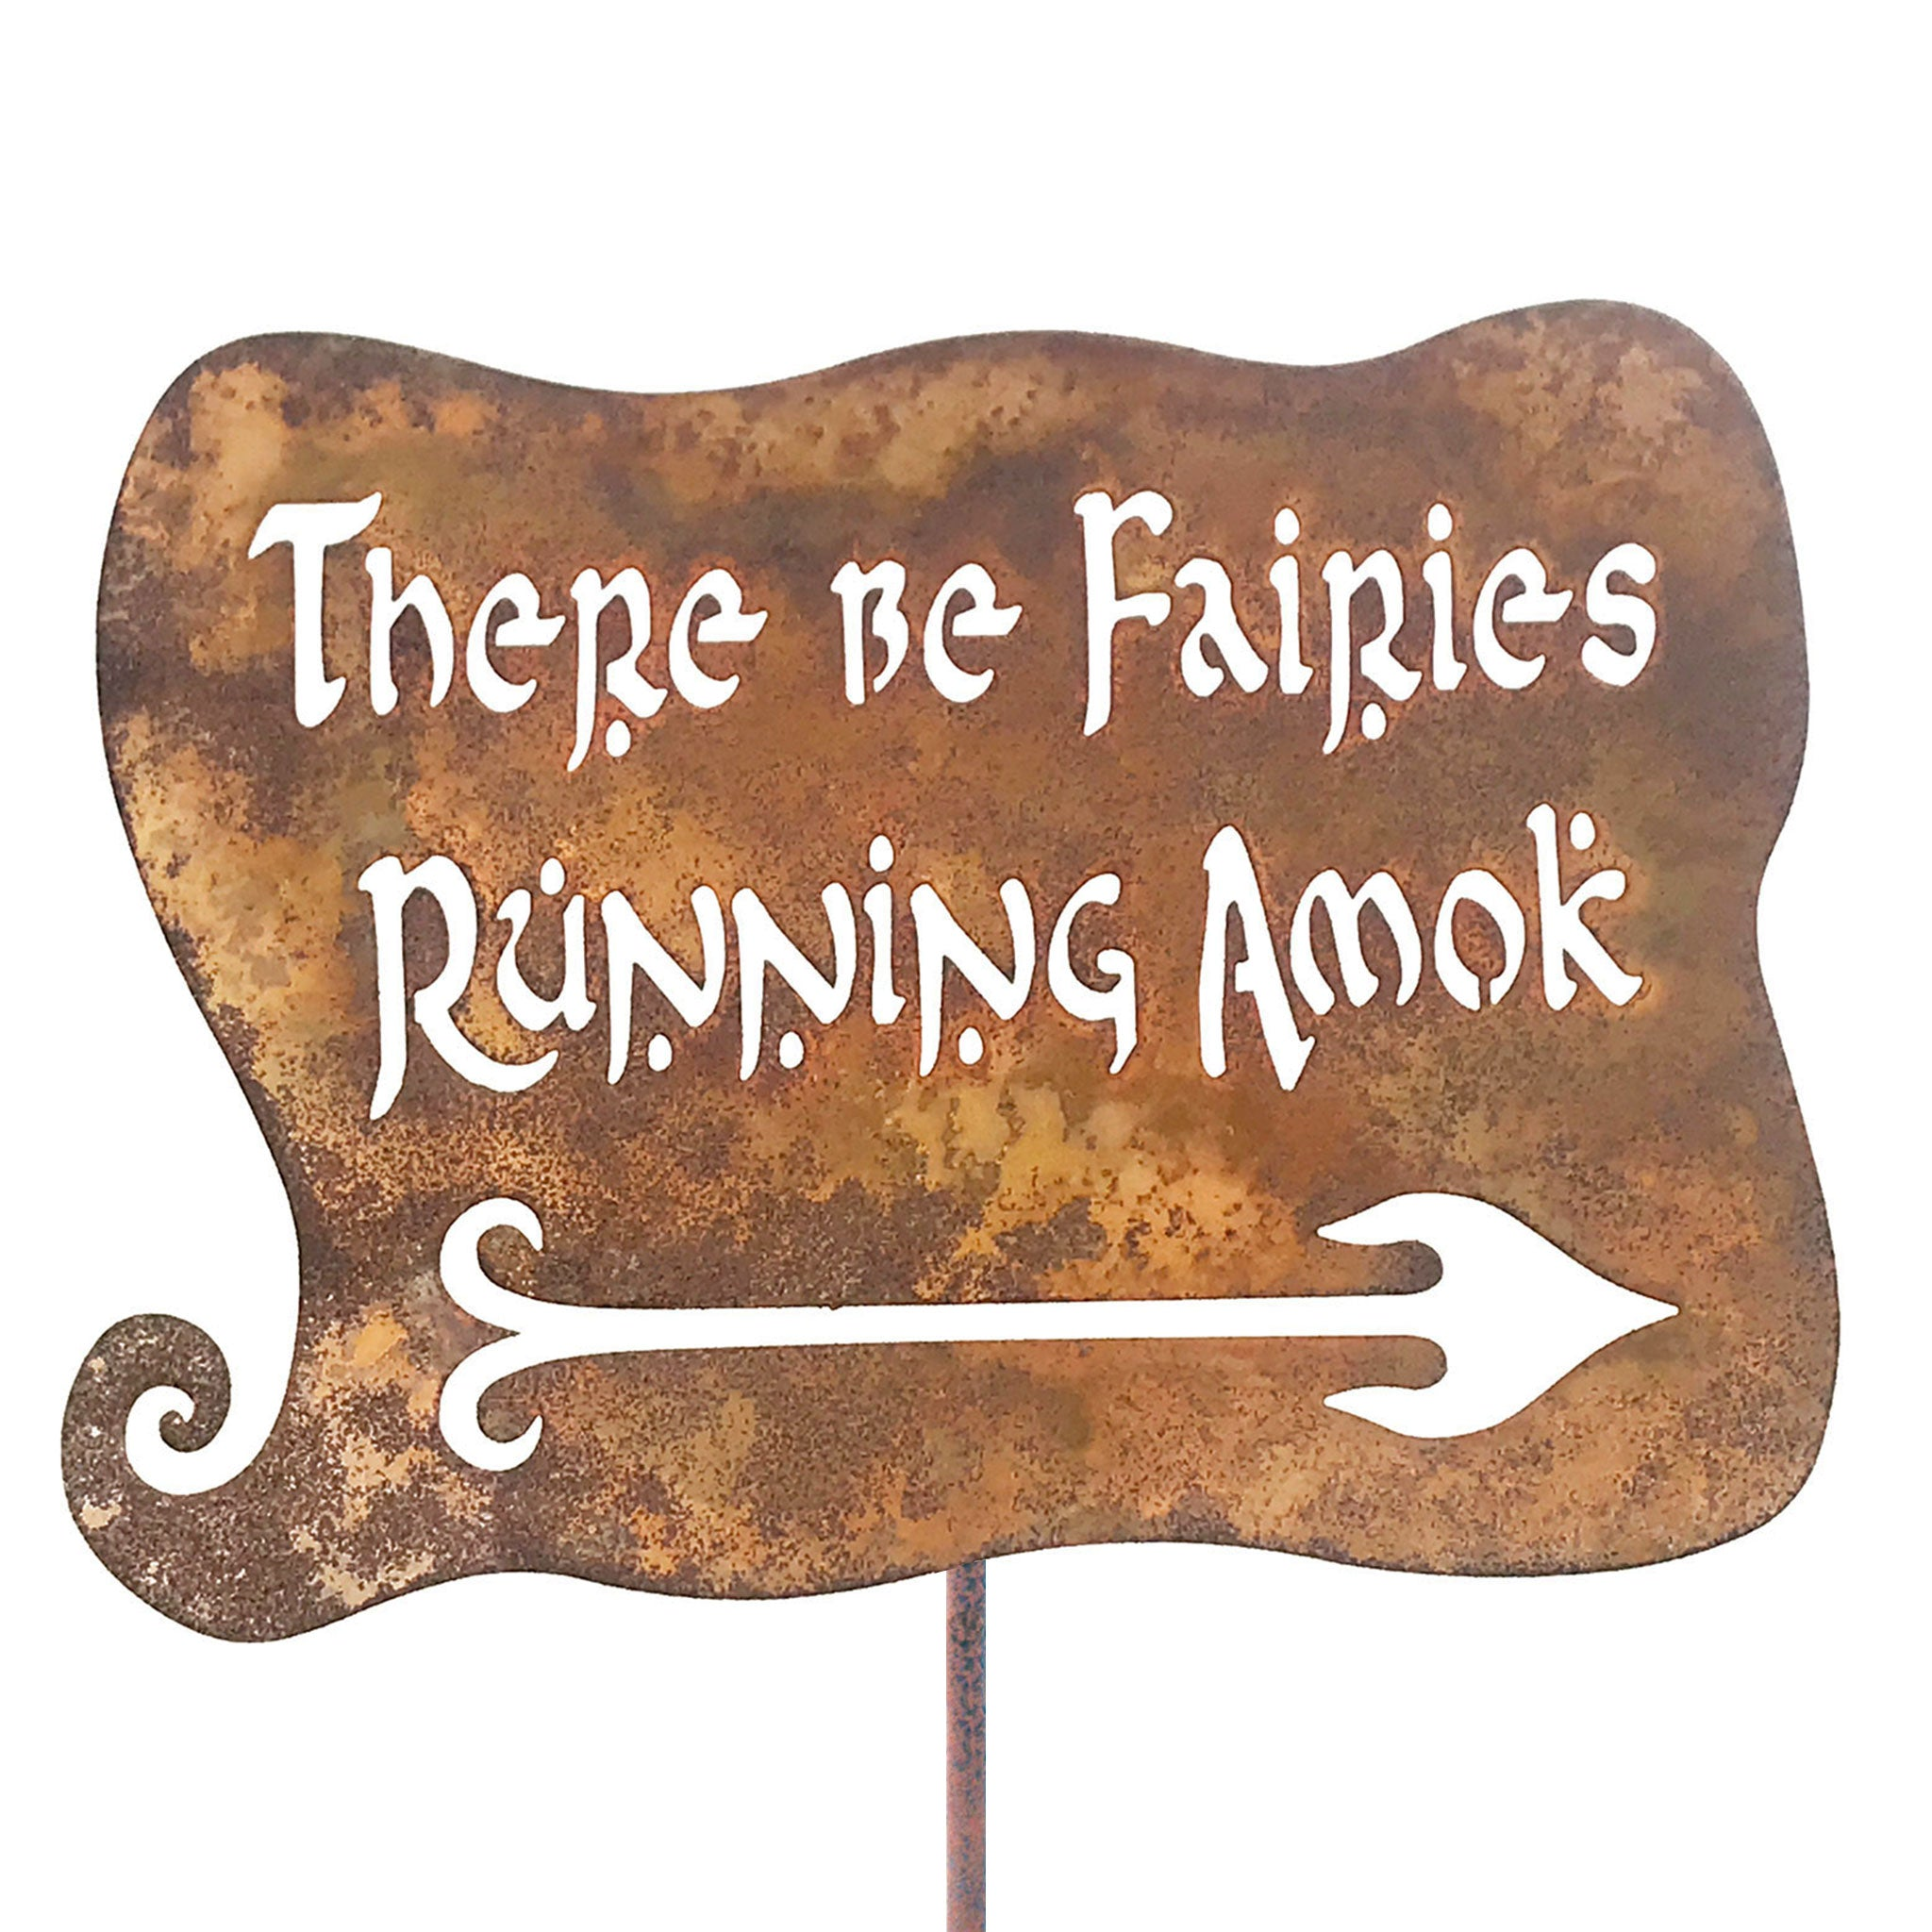 There Be Fairies Running Amok Garden Stick Sign